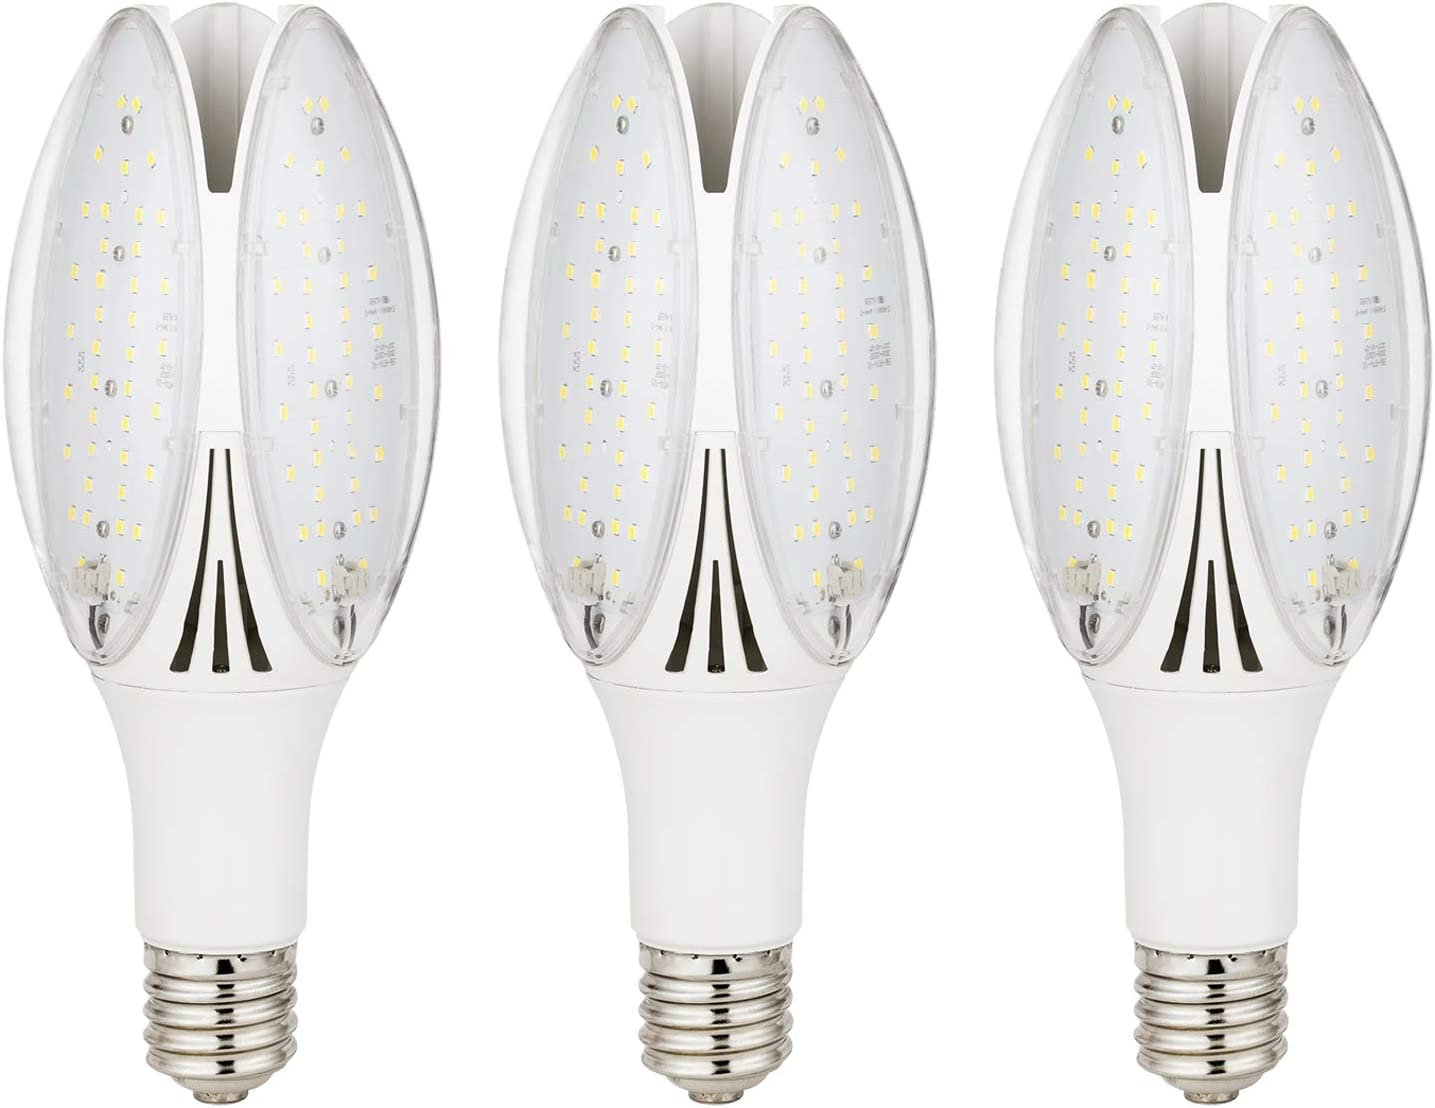 Sunlite 41153-SU LED PS35 High Output Bulb, 32W Watts (300W Equivalent), 4200 Lumens E39 Mogul Base, 120-277 Volts, UL Listed, 3 Pack, 50K - Super White